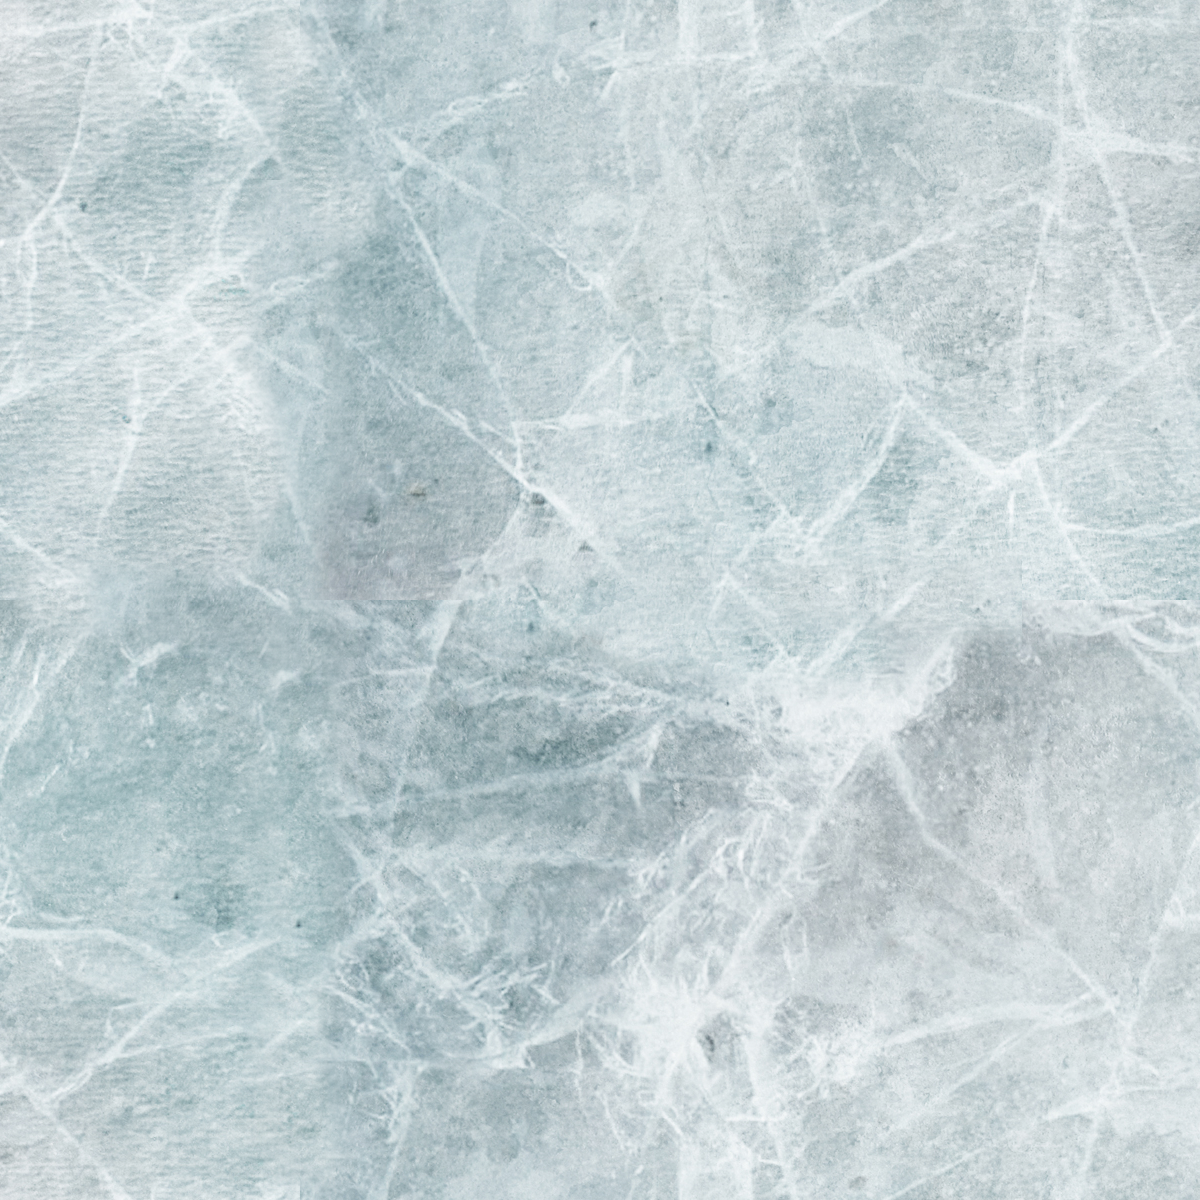 ice_background.png